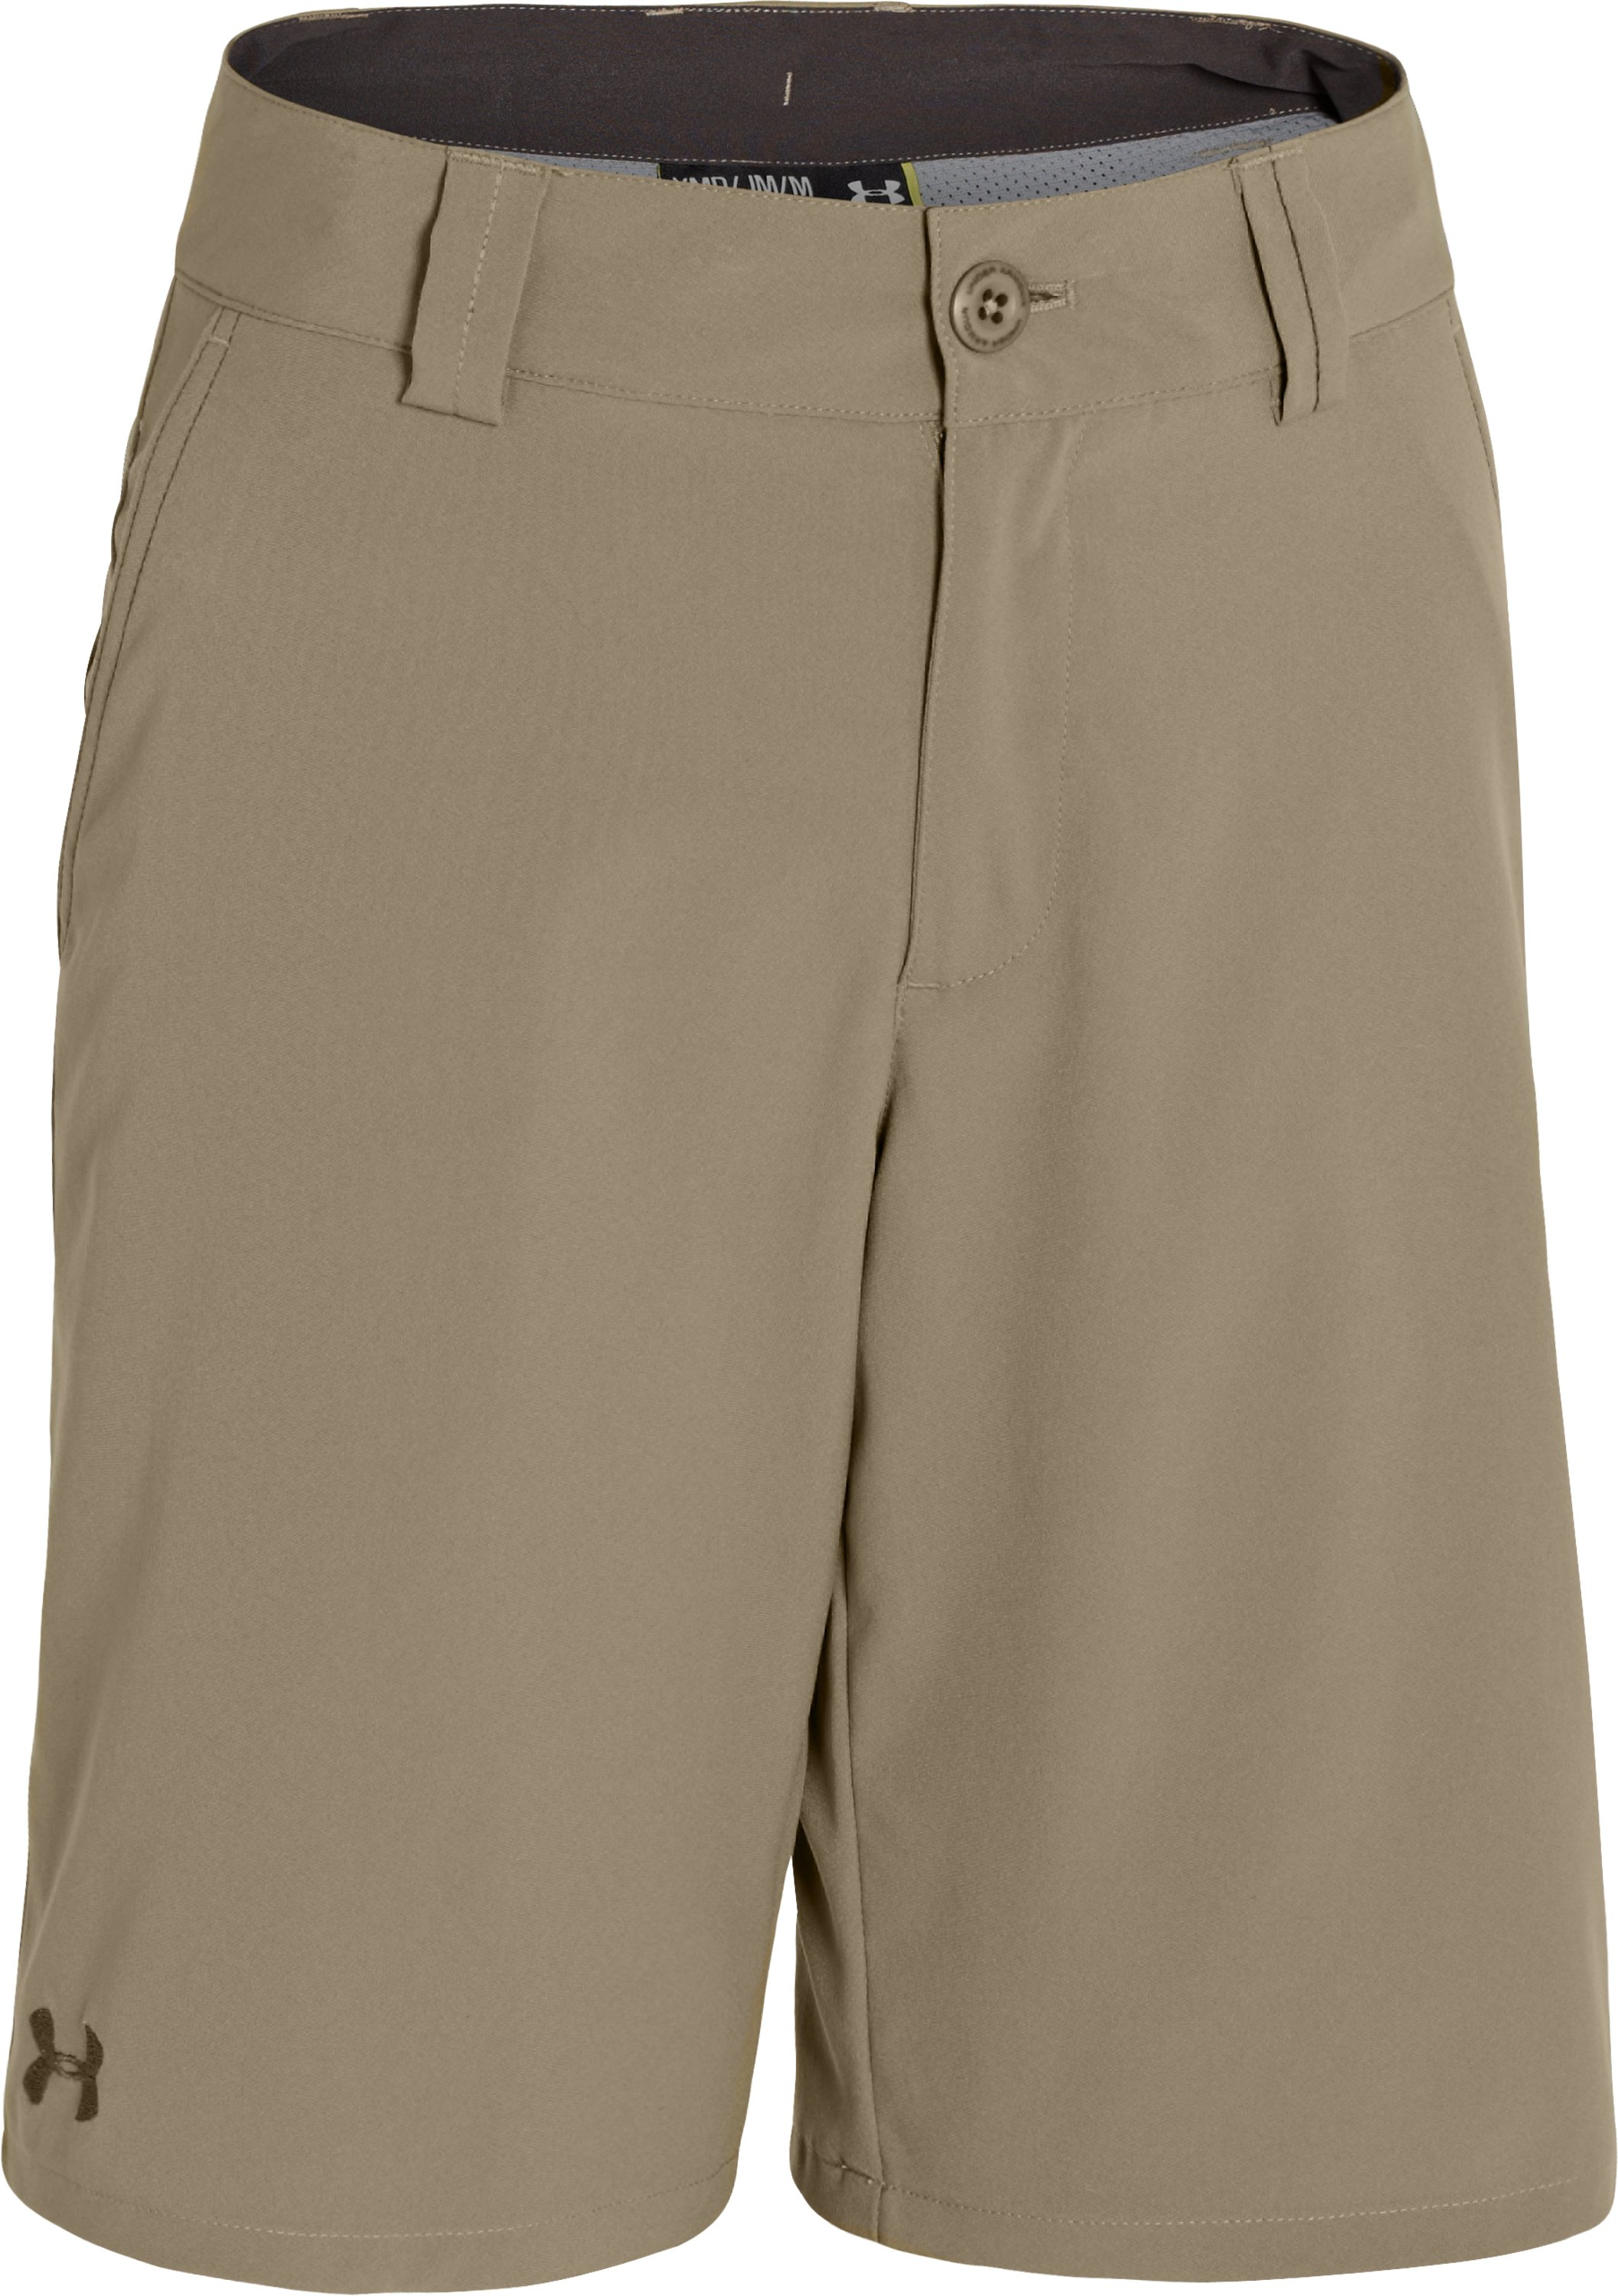 Boys' UA Forged Golf Shorts, Canvas, zoomed image